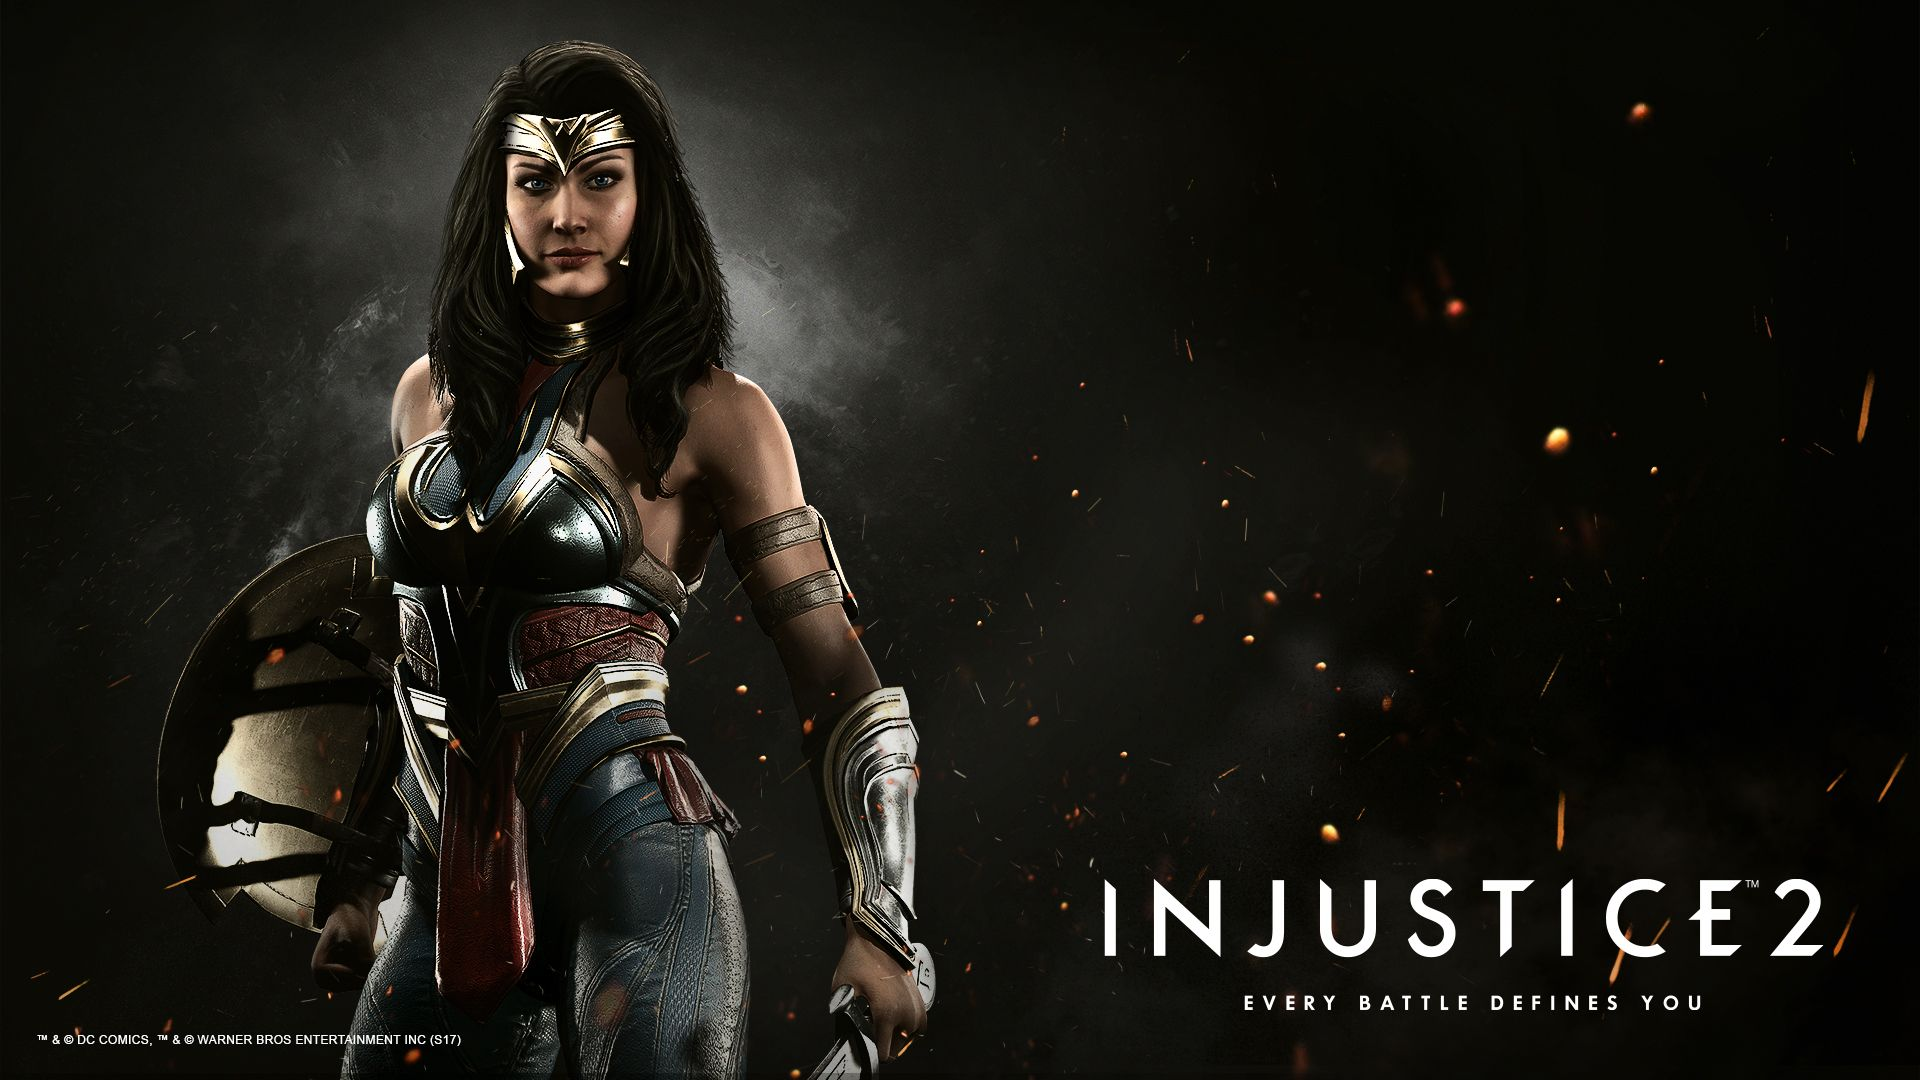 Diana of Themyscira (Injustice)